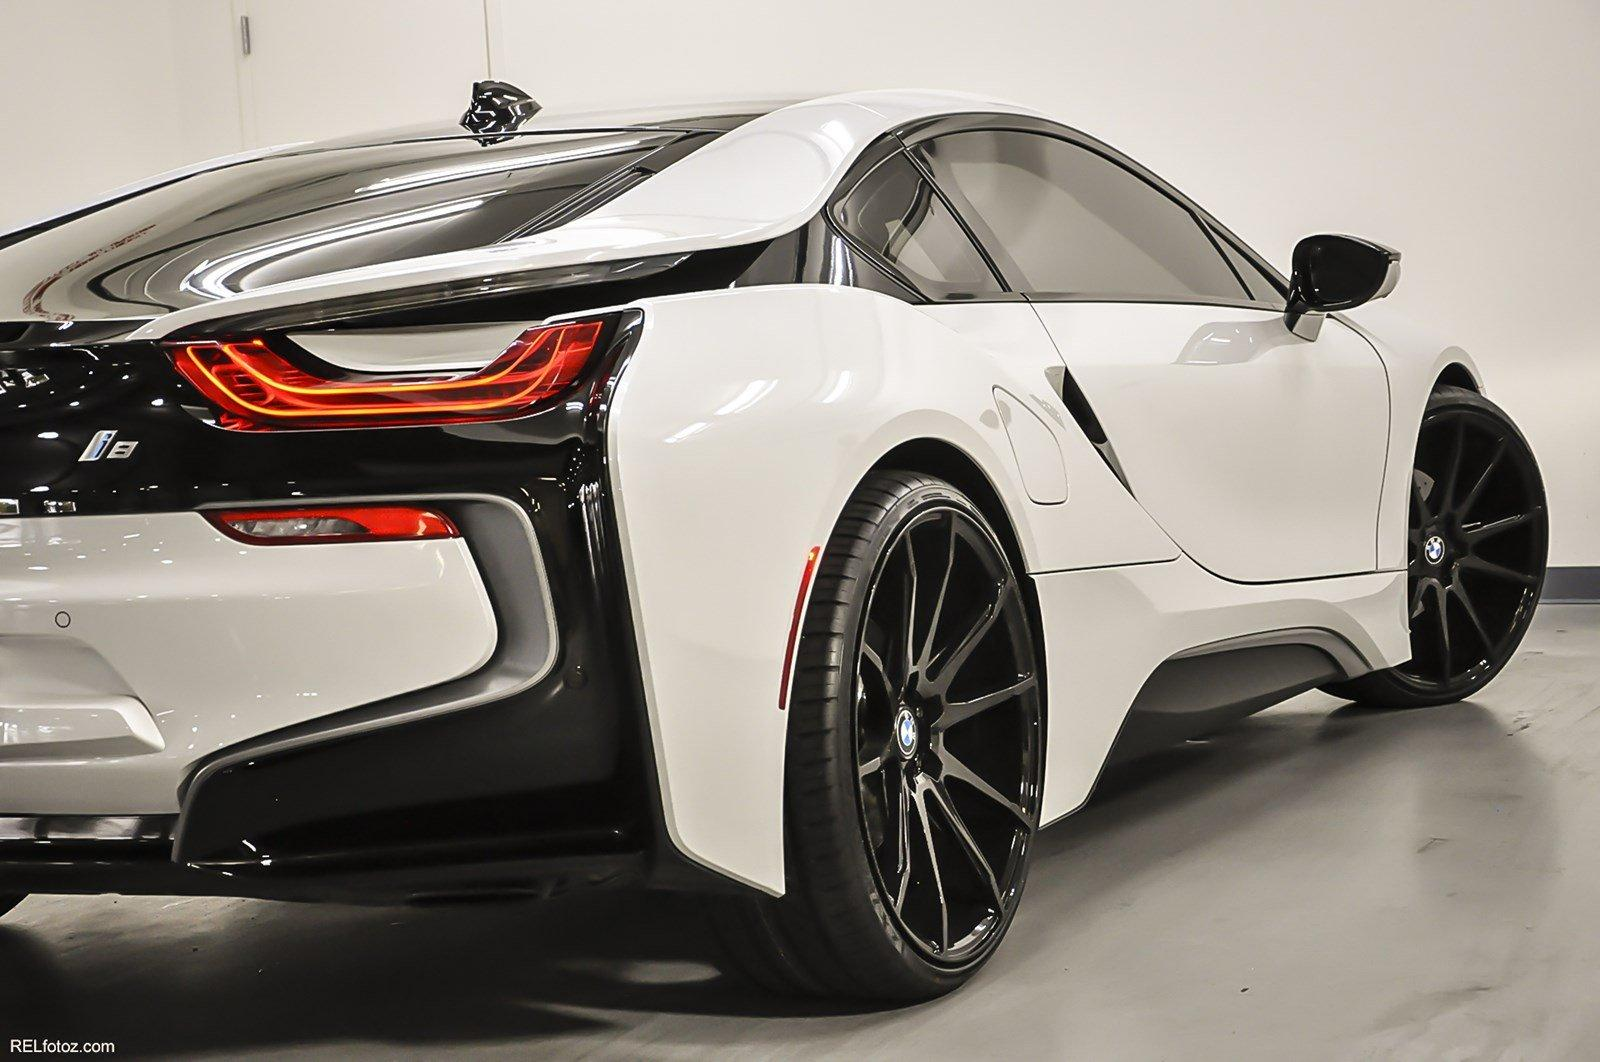 2016 Bmw I8 Stock 675317 For Sale Near Marietta Ga Ga Bmw Dealer